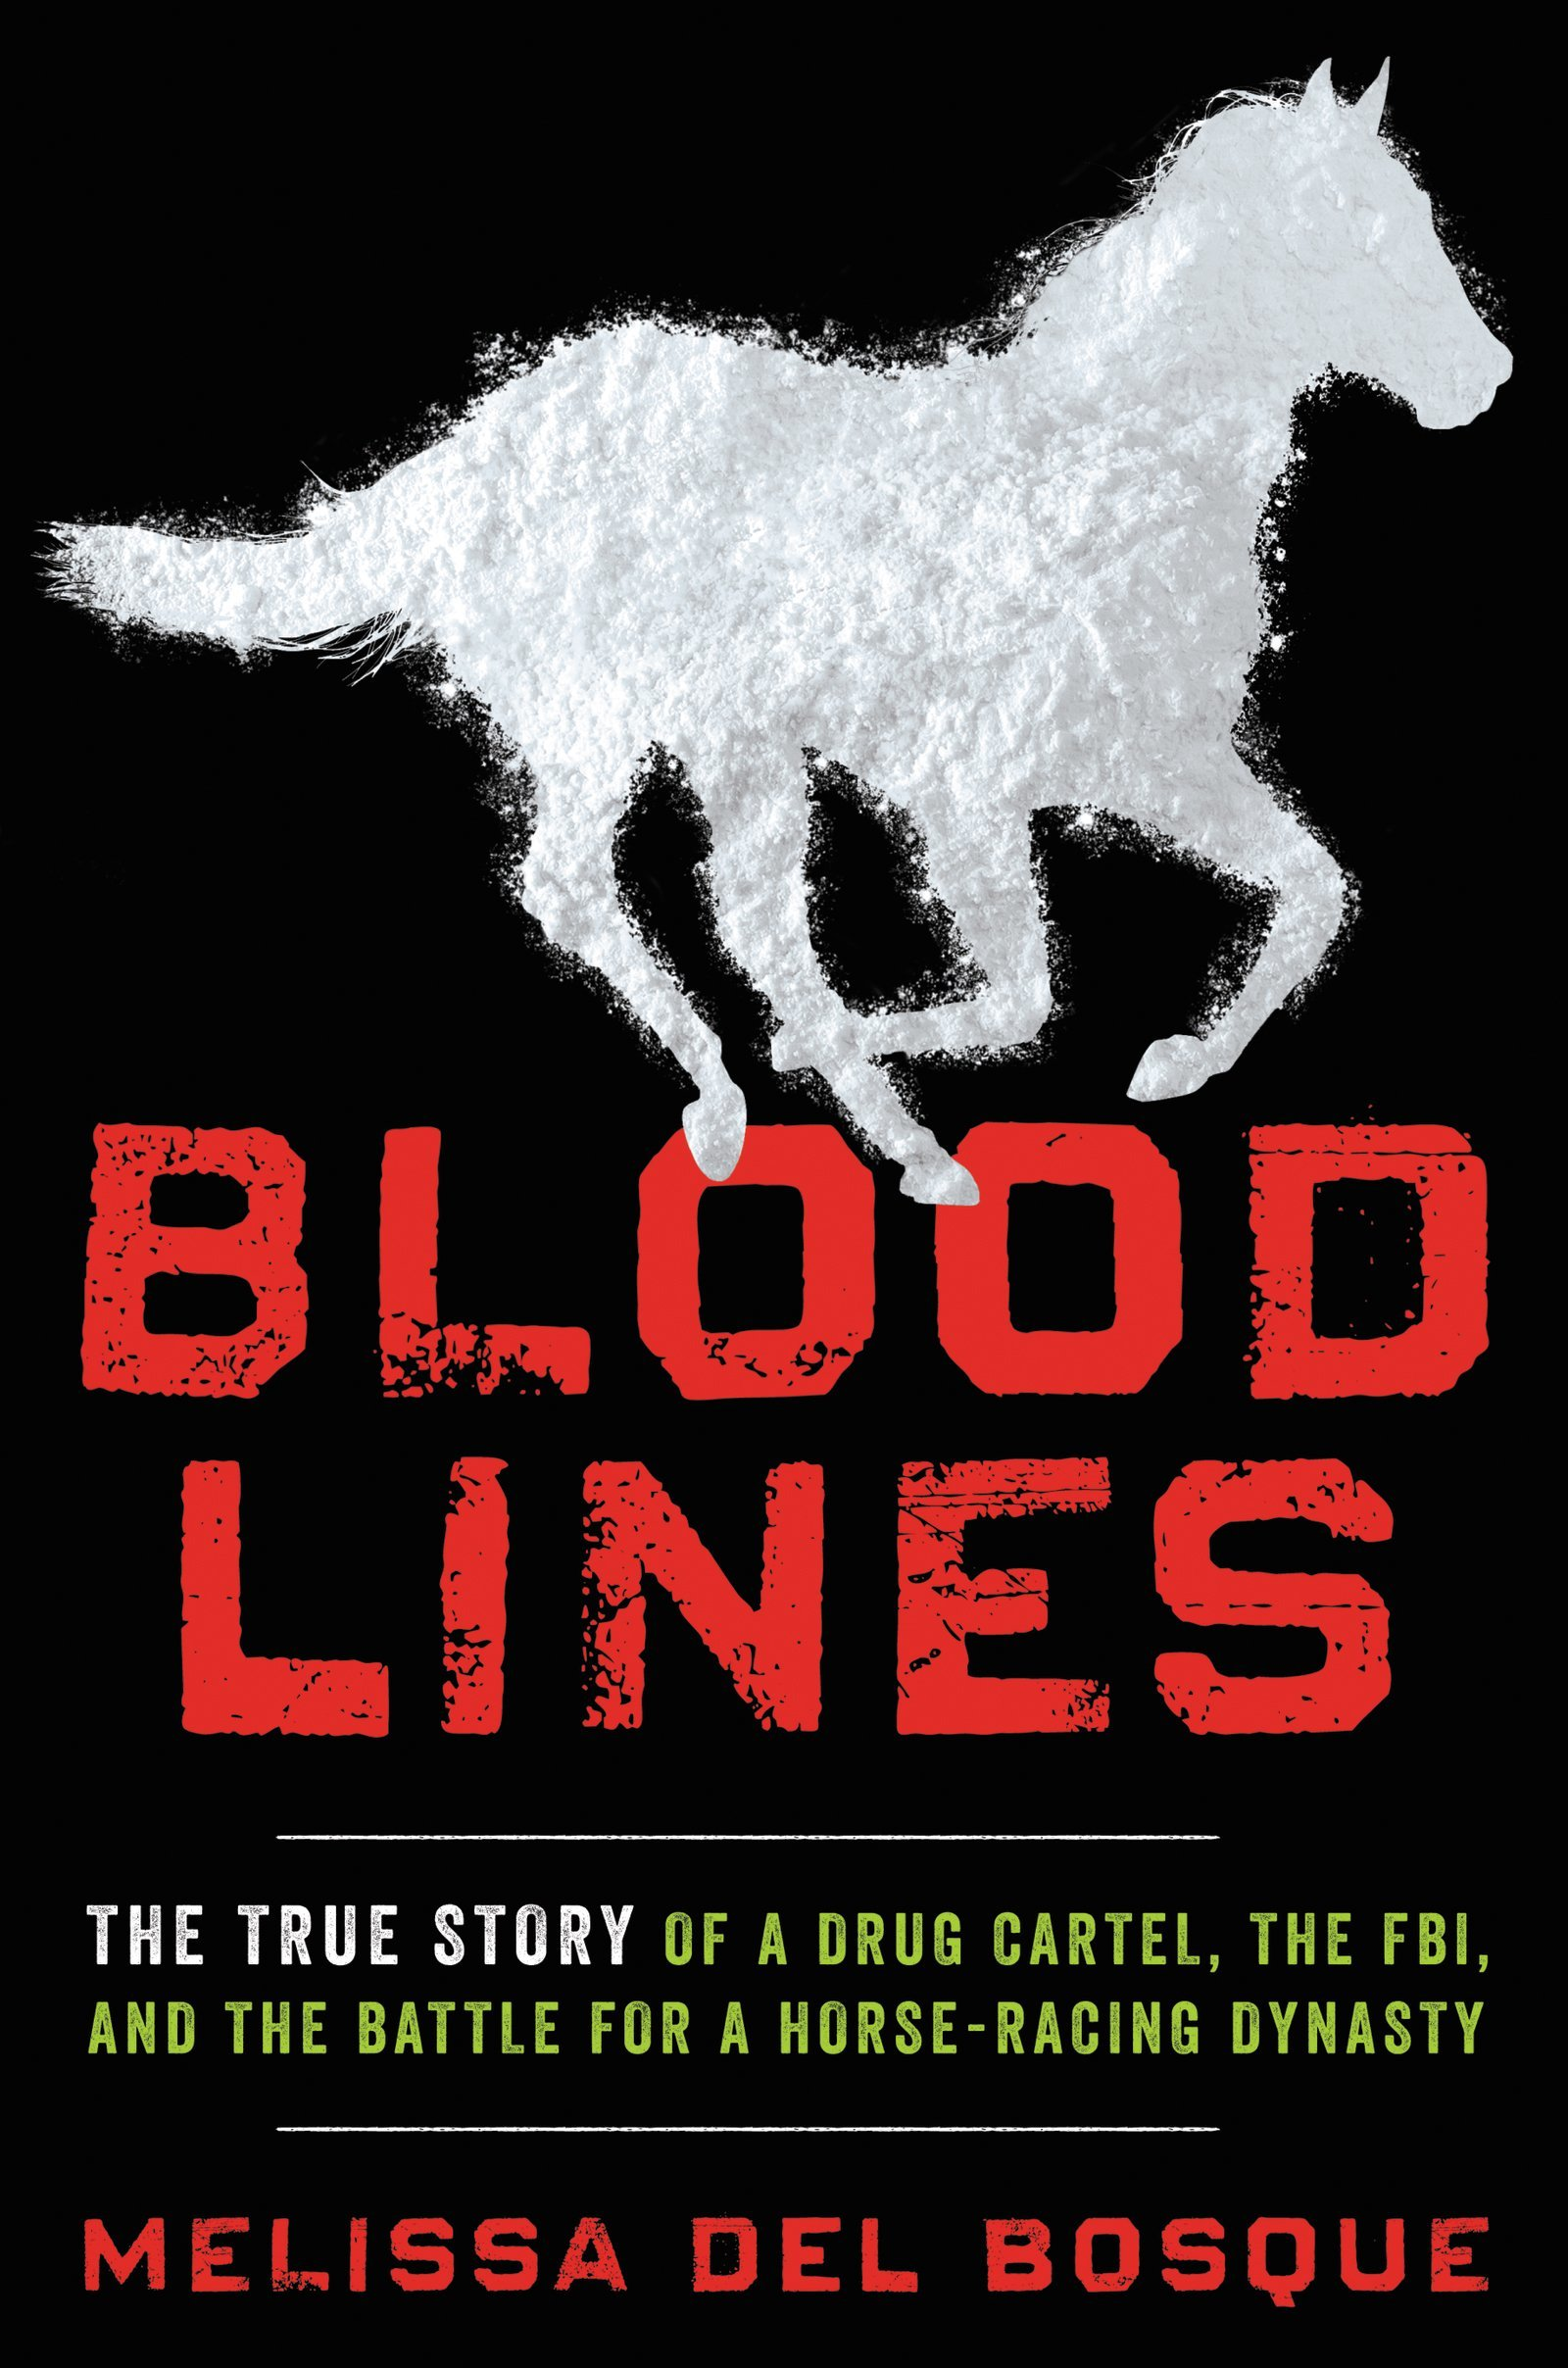 Bloodlines The True Story of a Drug Cartel, the FBI, and the Battle for a Horse-Racing Dynasty